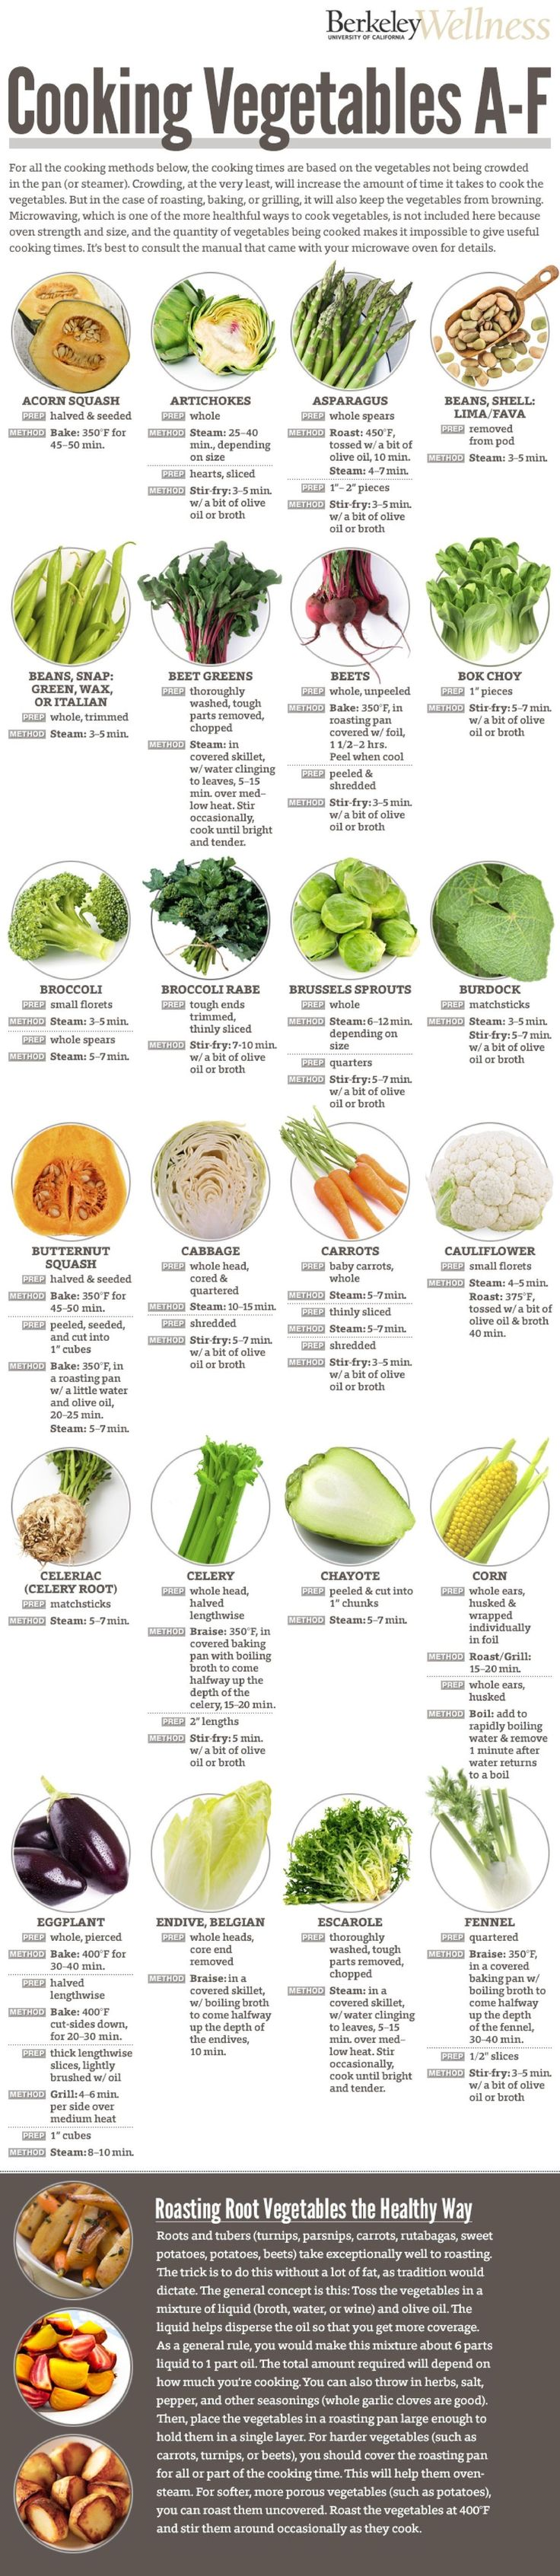 Tips on cooking vegetables, from Berkeley Wellness. I prefer some of these raw (celery, fennel), though many are better for us when cooked, including carrots and members of the cabbage family (Brussels sprouts, broccoli, cauliflower, etc).